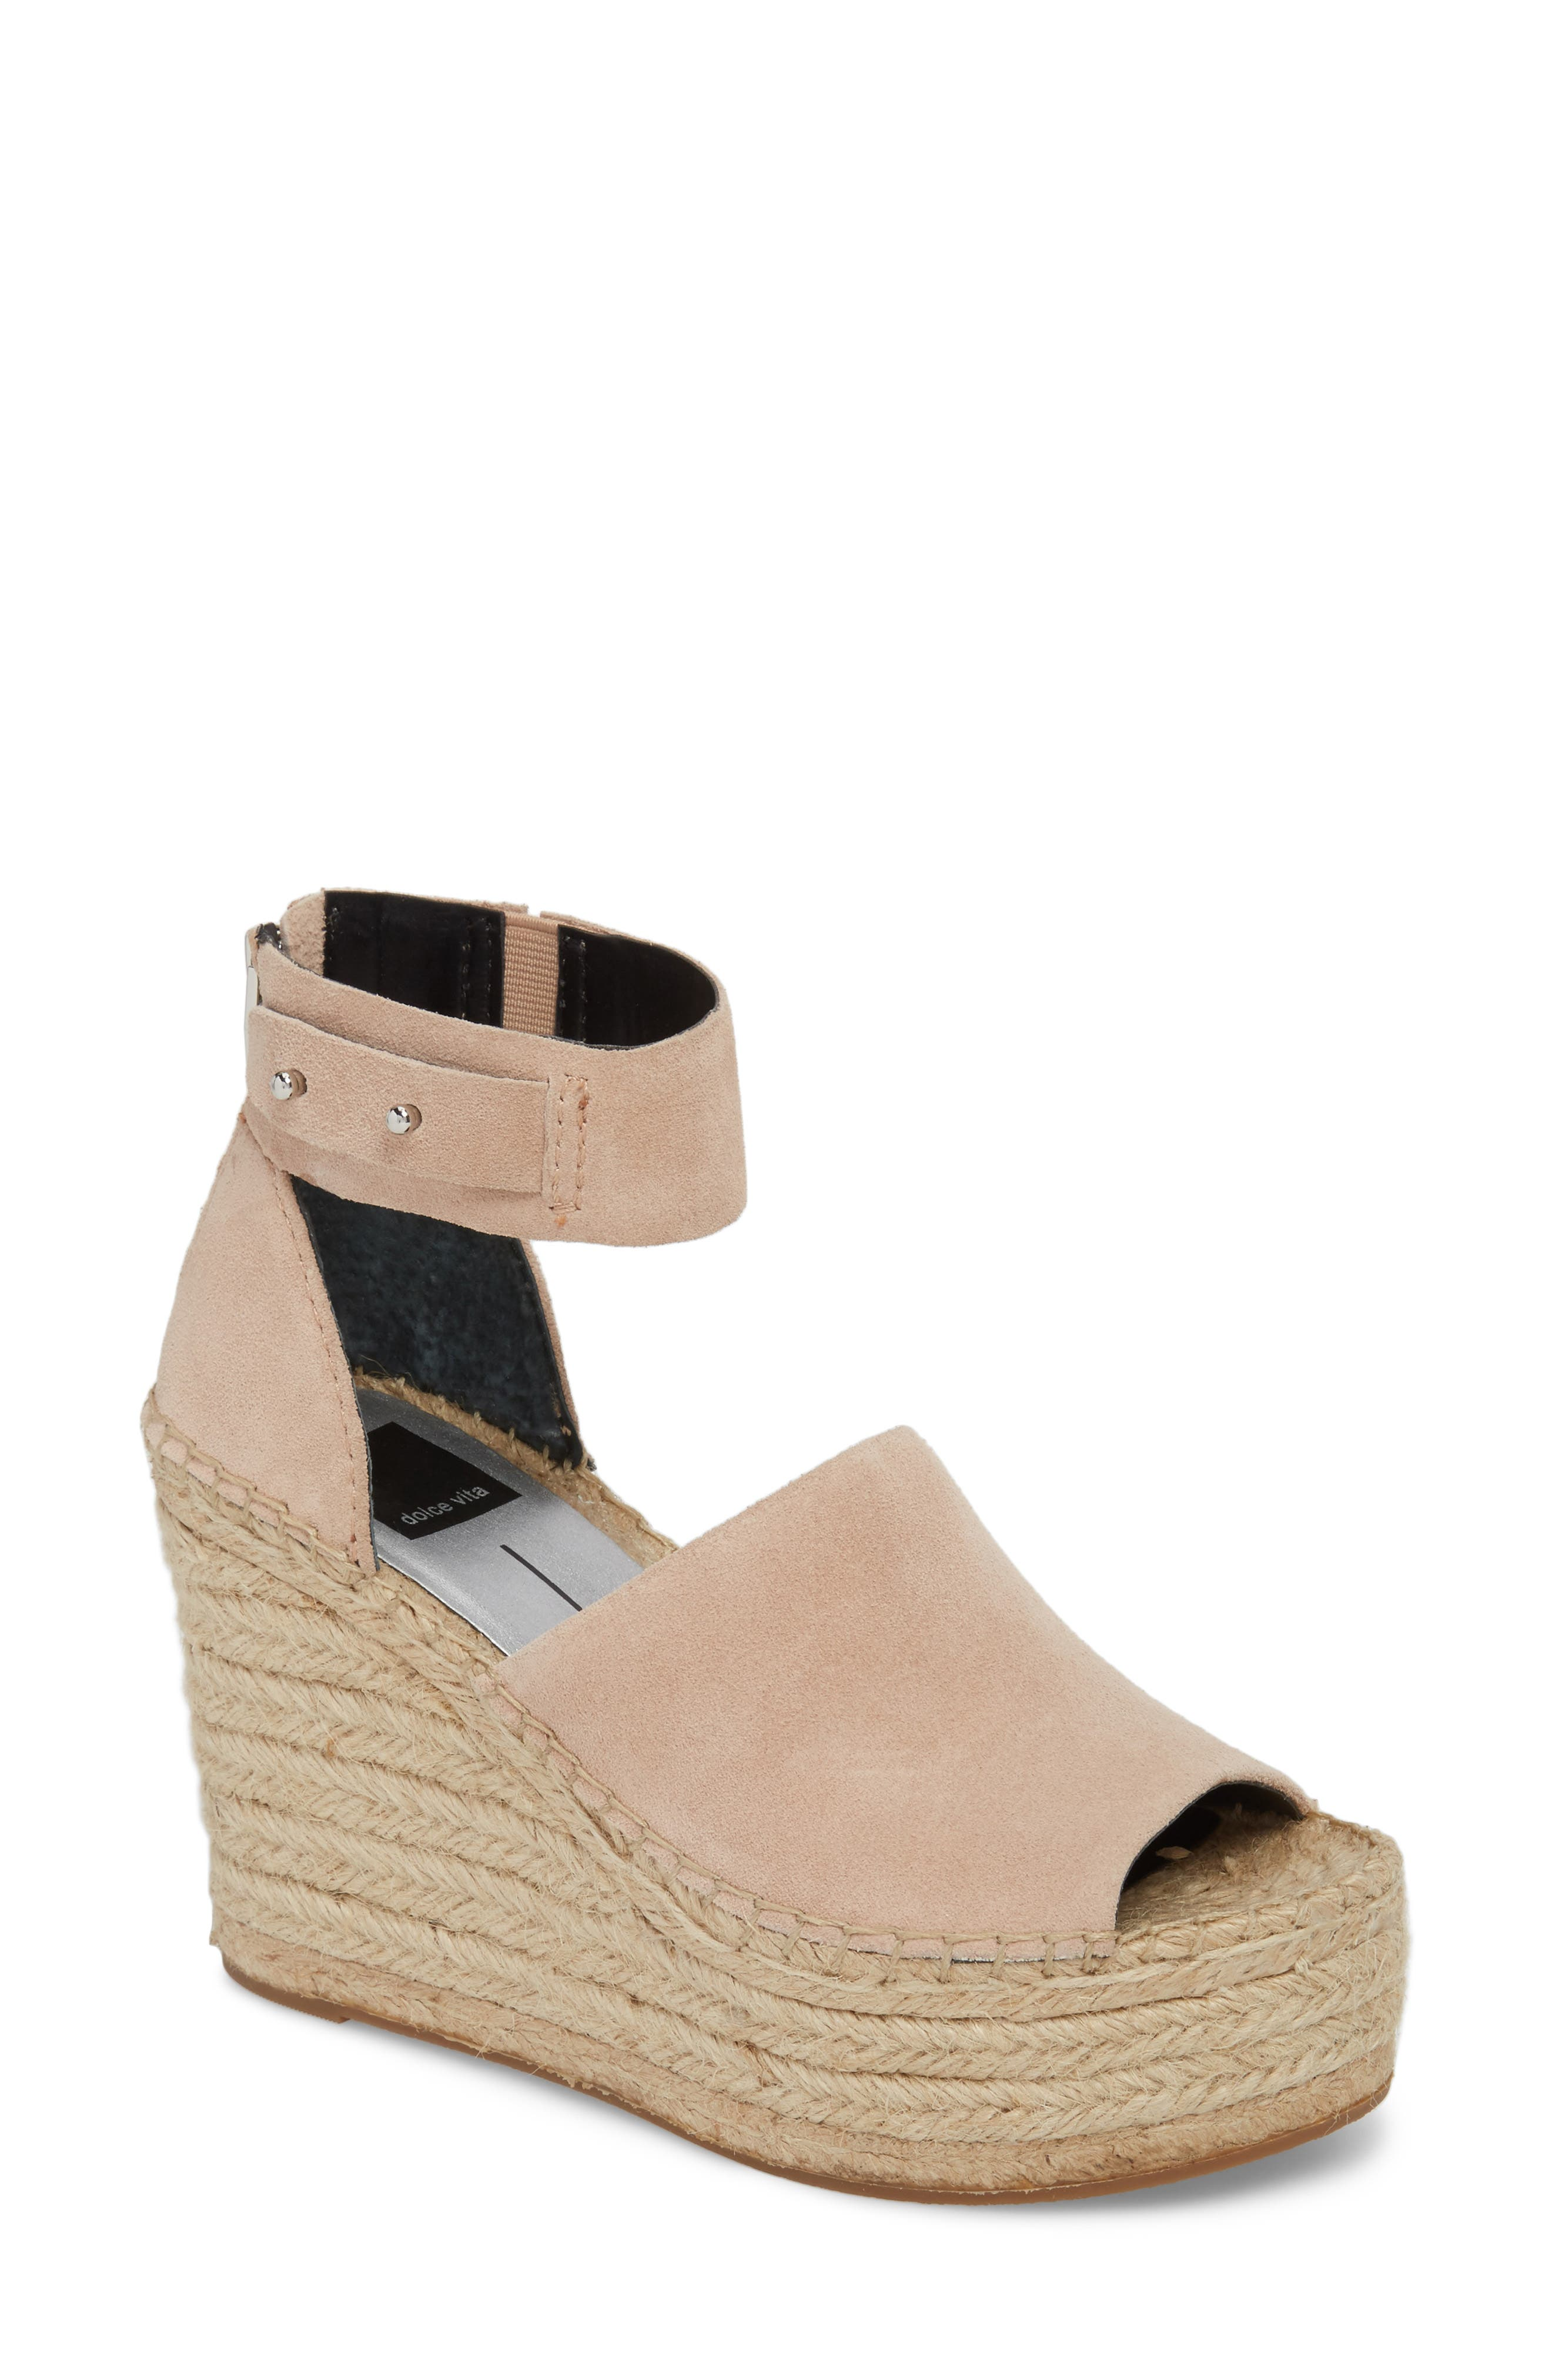 Straw Wedge Espadrille Sandal, Main, color, BLUSH